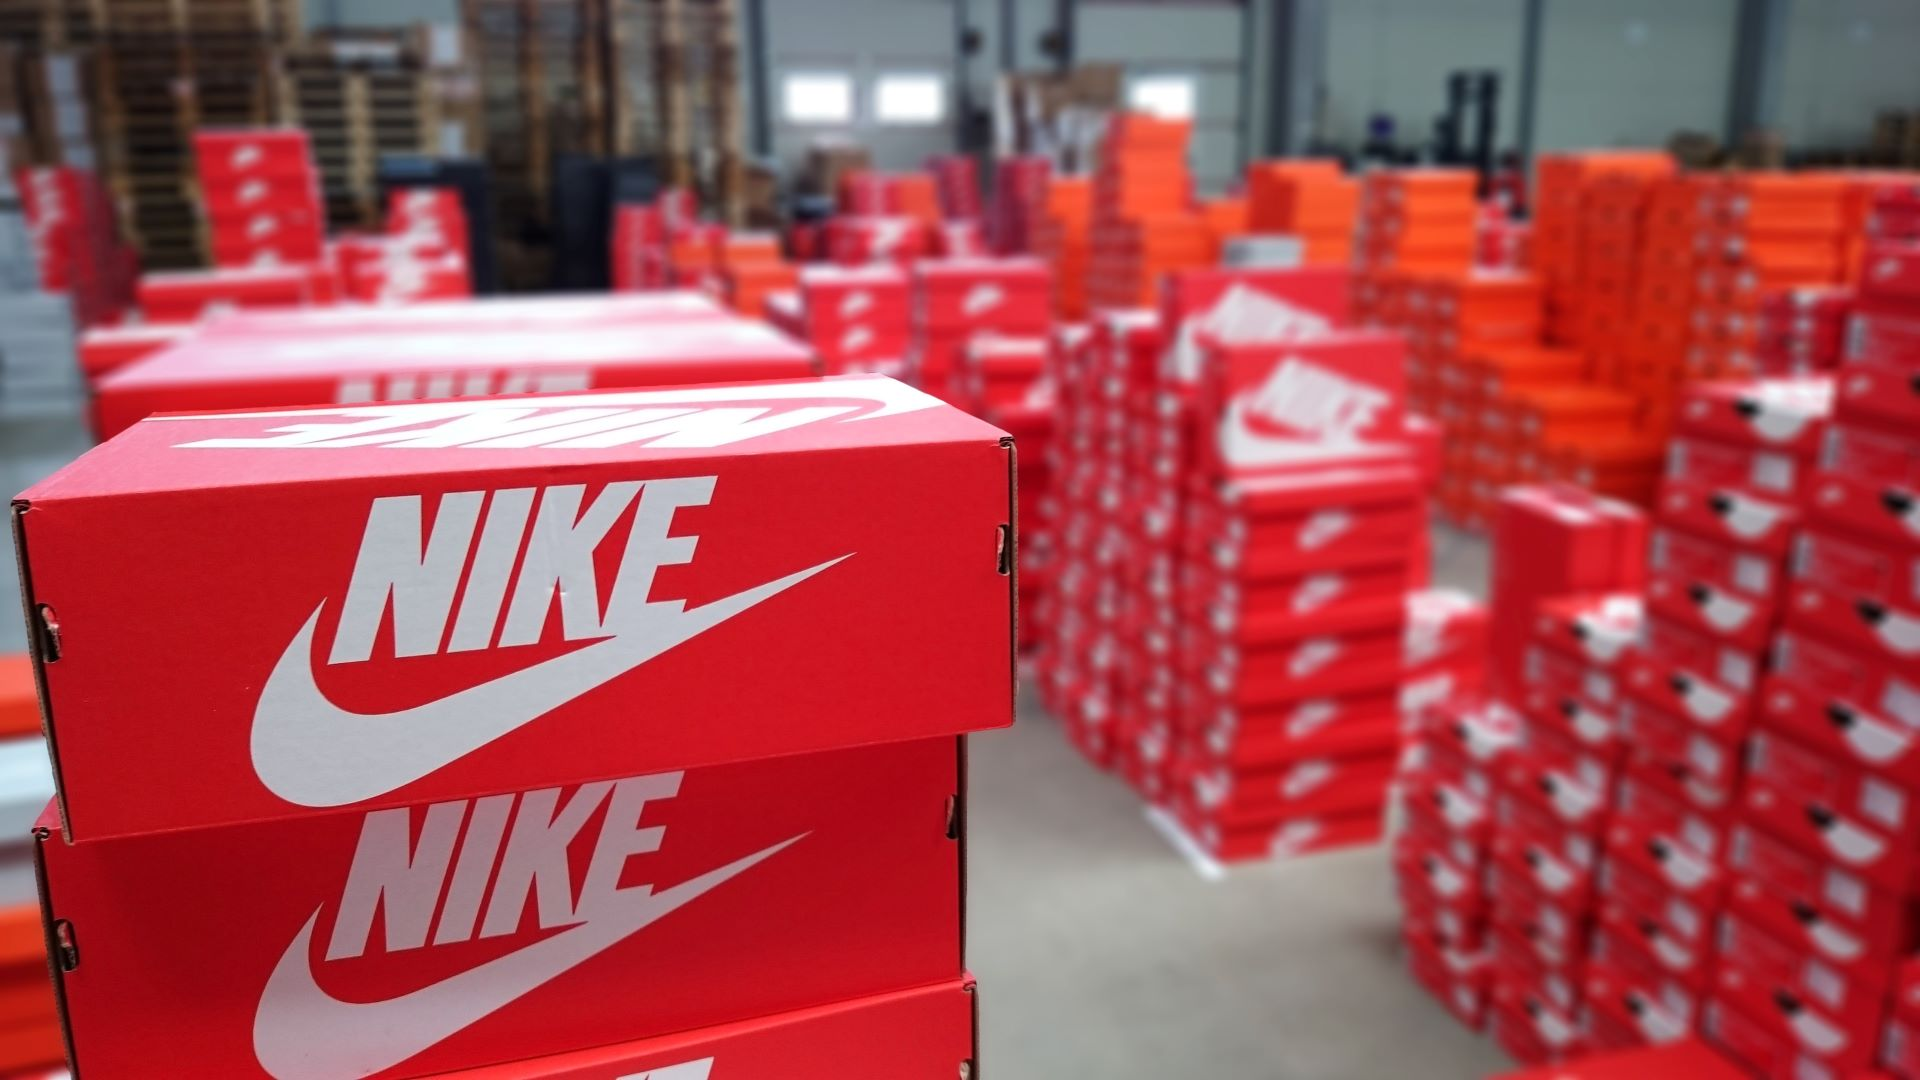 Stacks of red Nike shoe boxes in a warehouse.